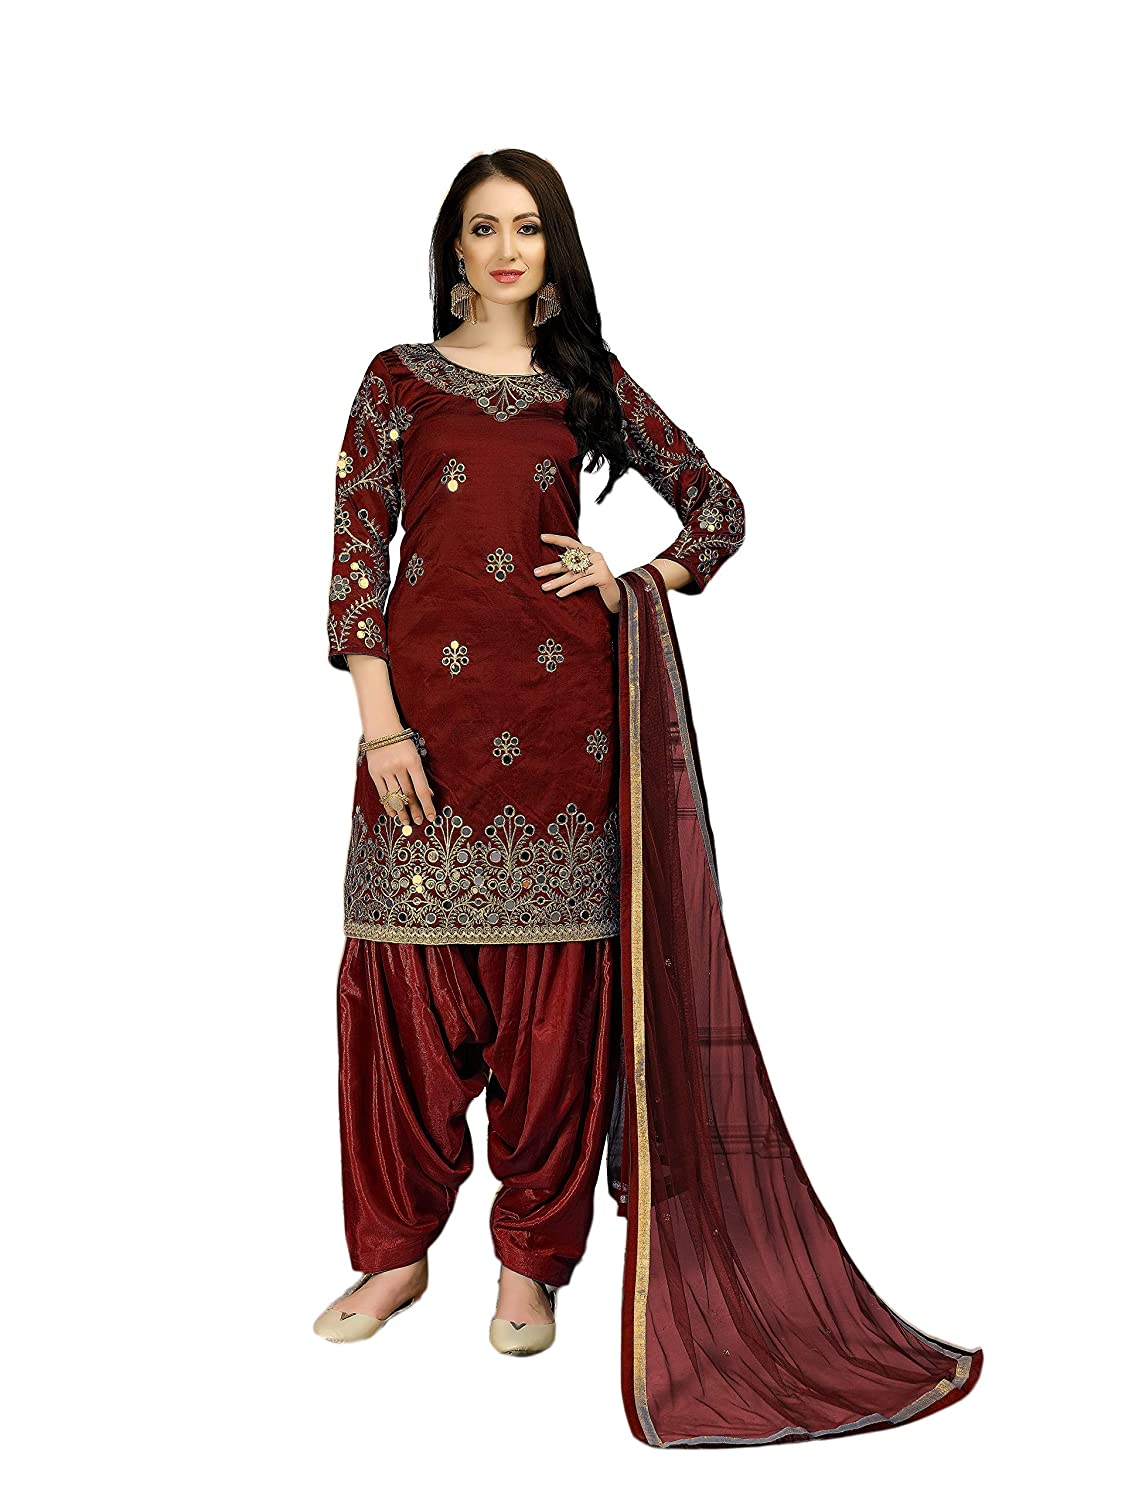 f5ed69625bb Amazon.com  Bollywood Ethnic Women s Party Wear Anarkali Salwar Kameez Un- Stitched A1475 Maroon  Clothing